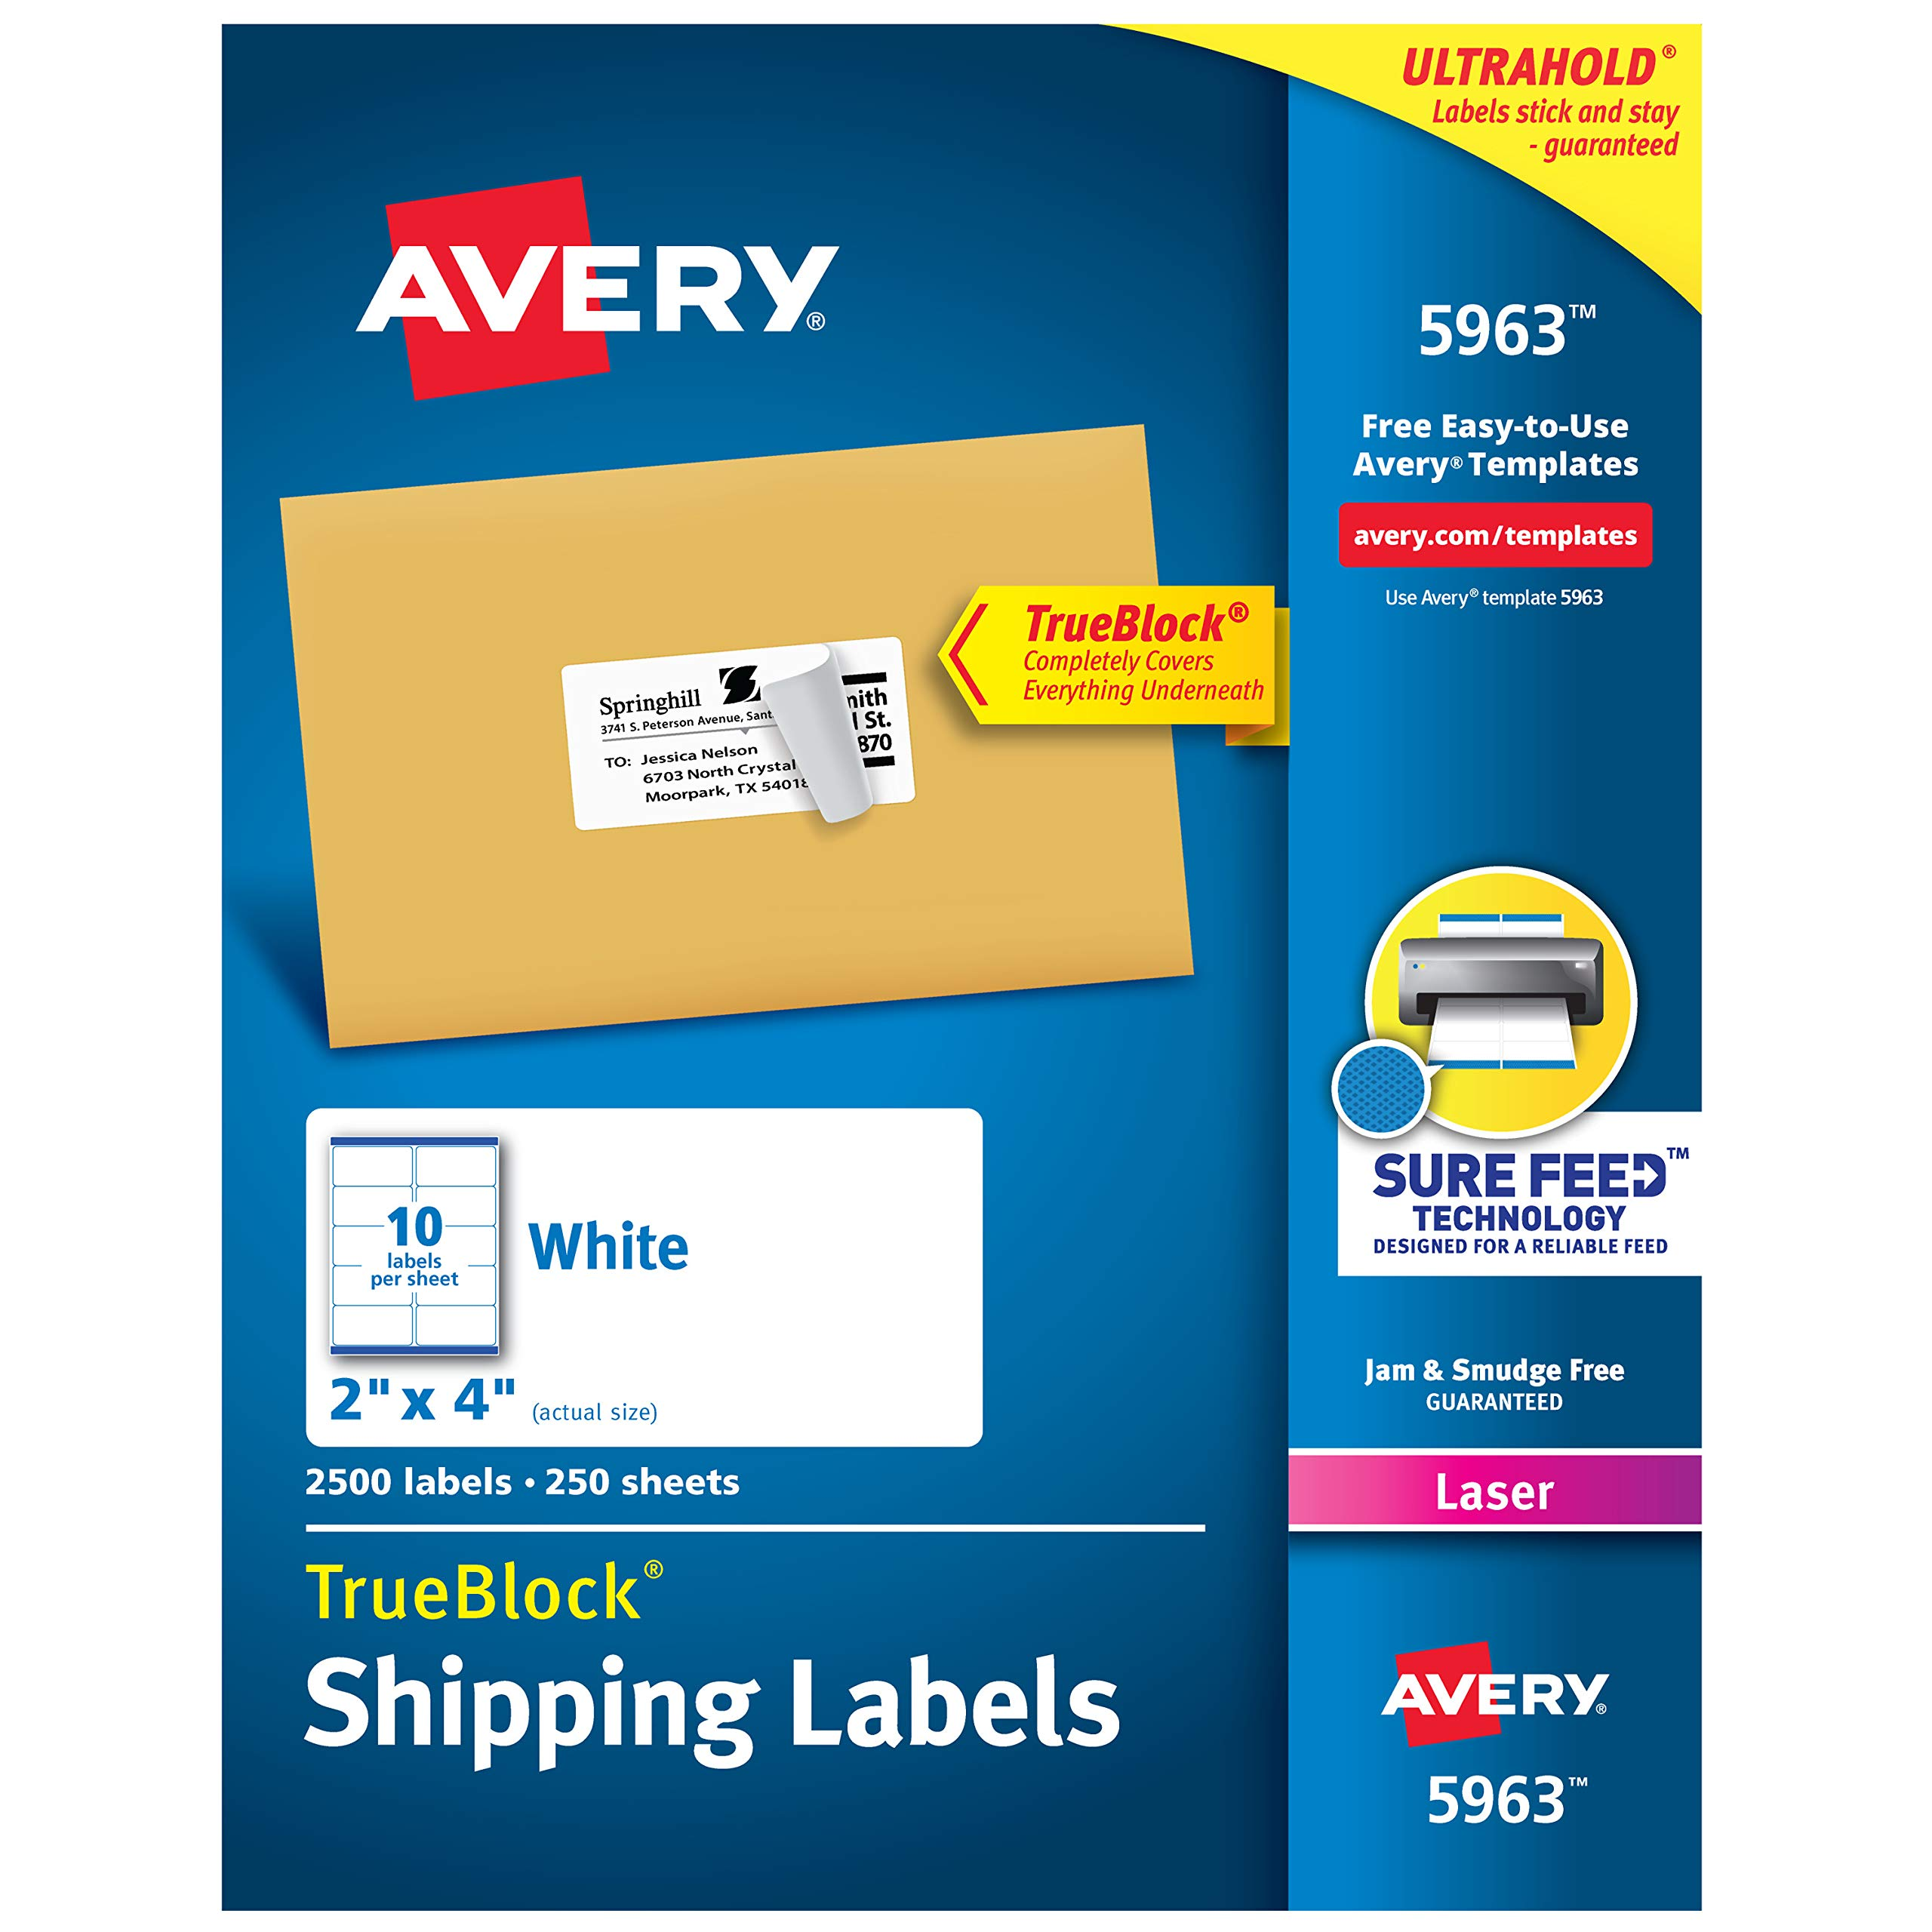 Avery Shipping Address Labels, Laser Printers, 2,500 Labels, 2x4 Labels, Permanent Adhesive, TrueBlock (5963), White by AVERY